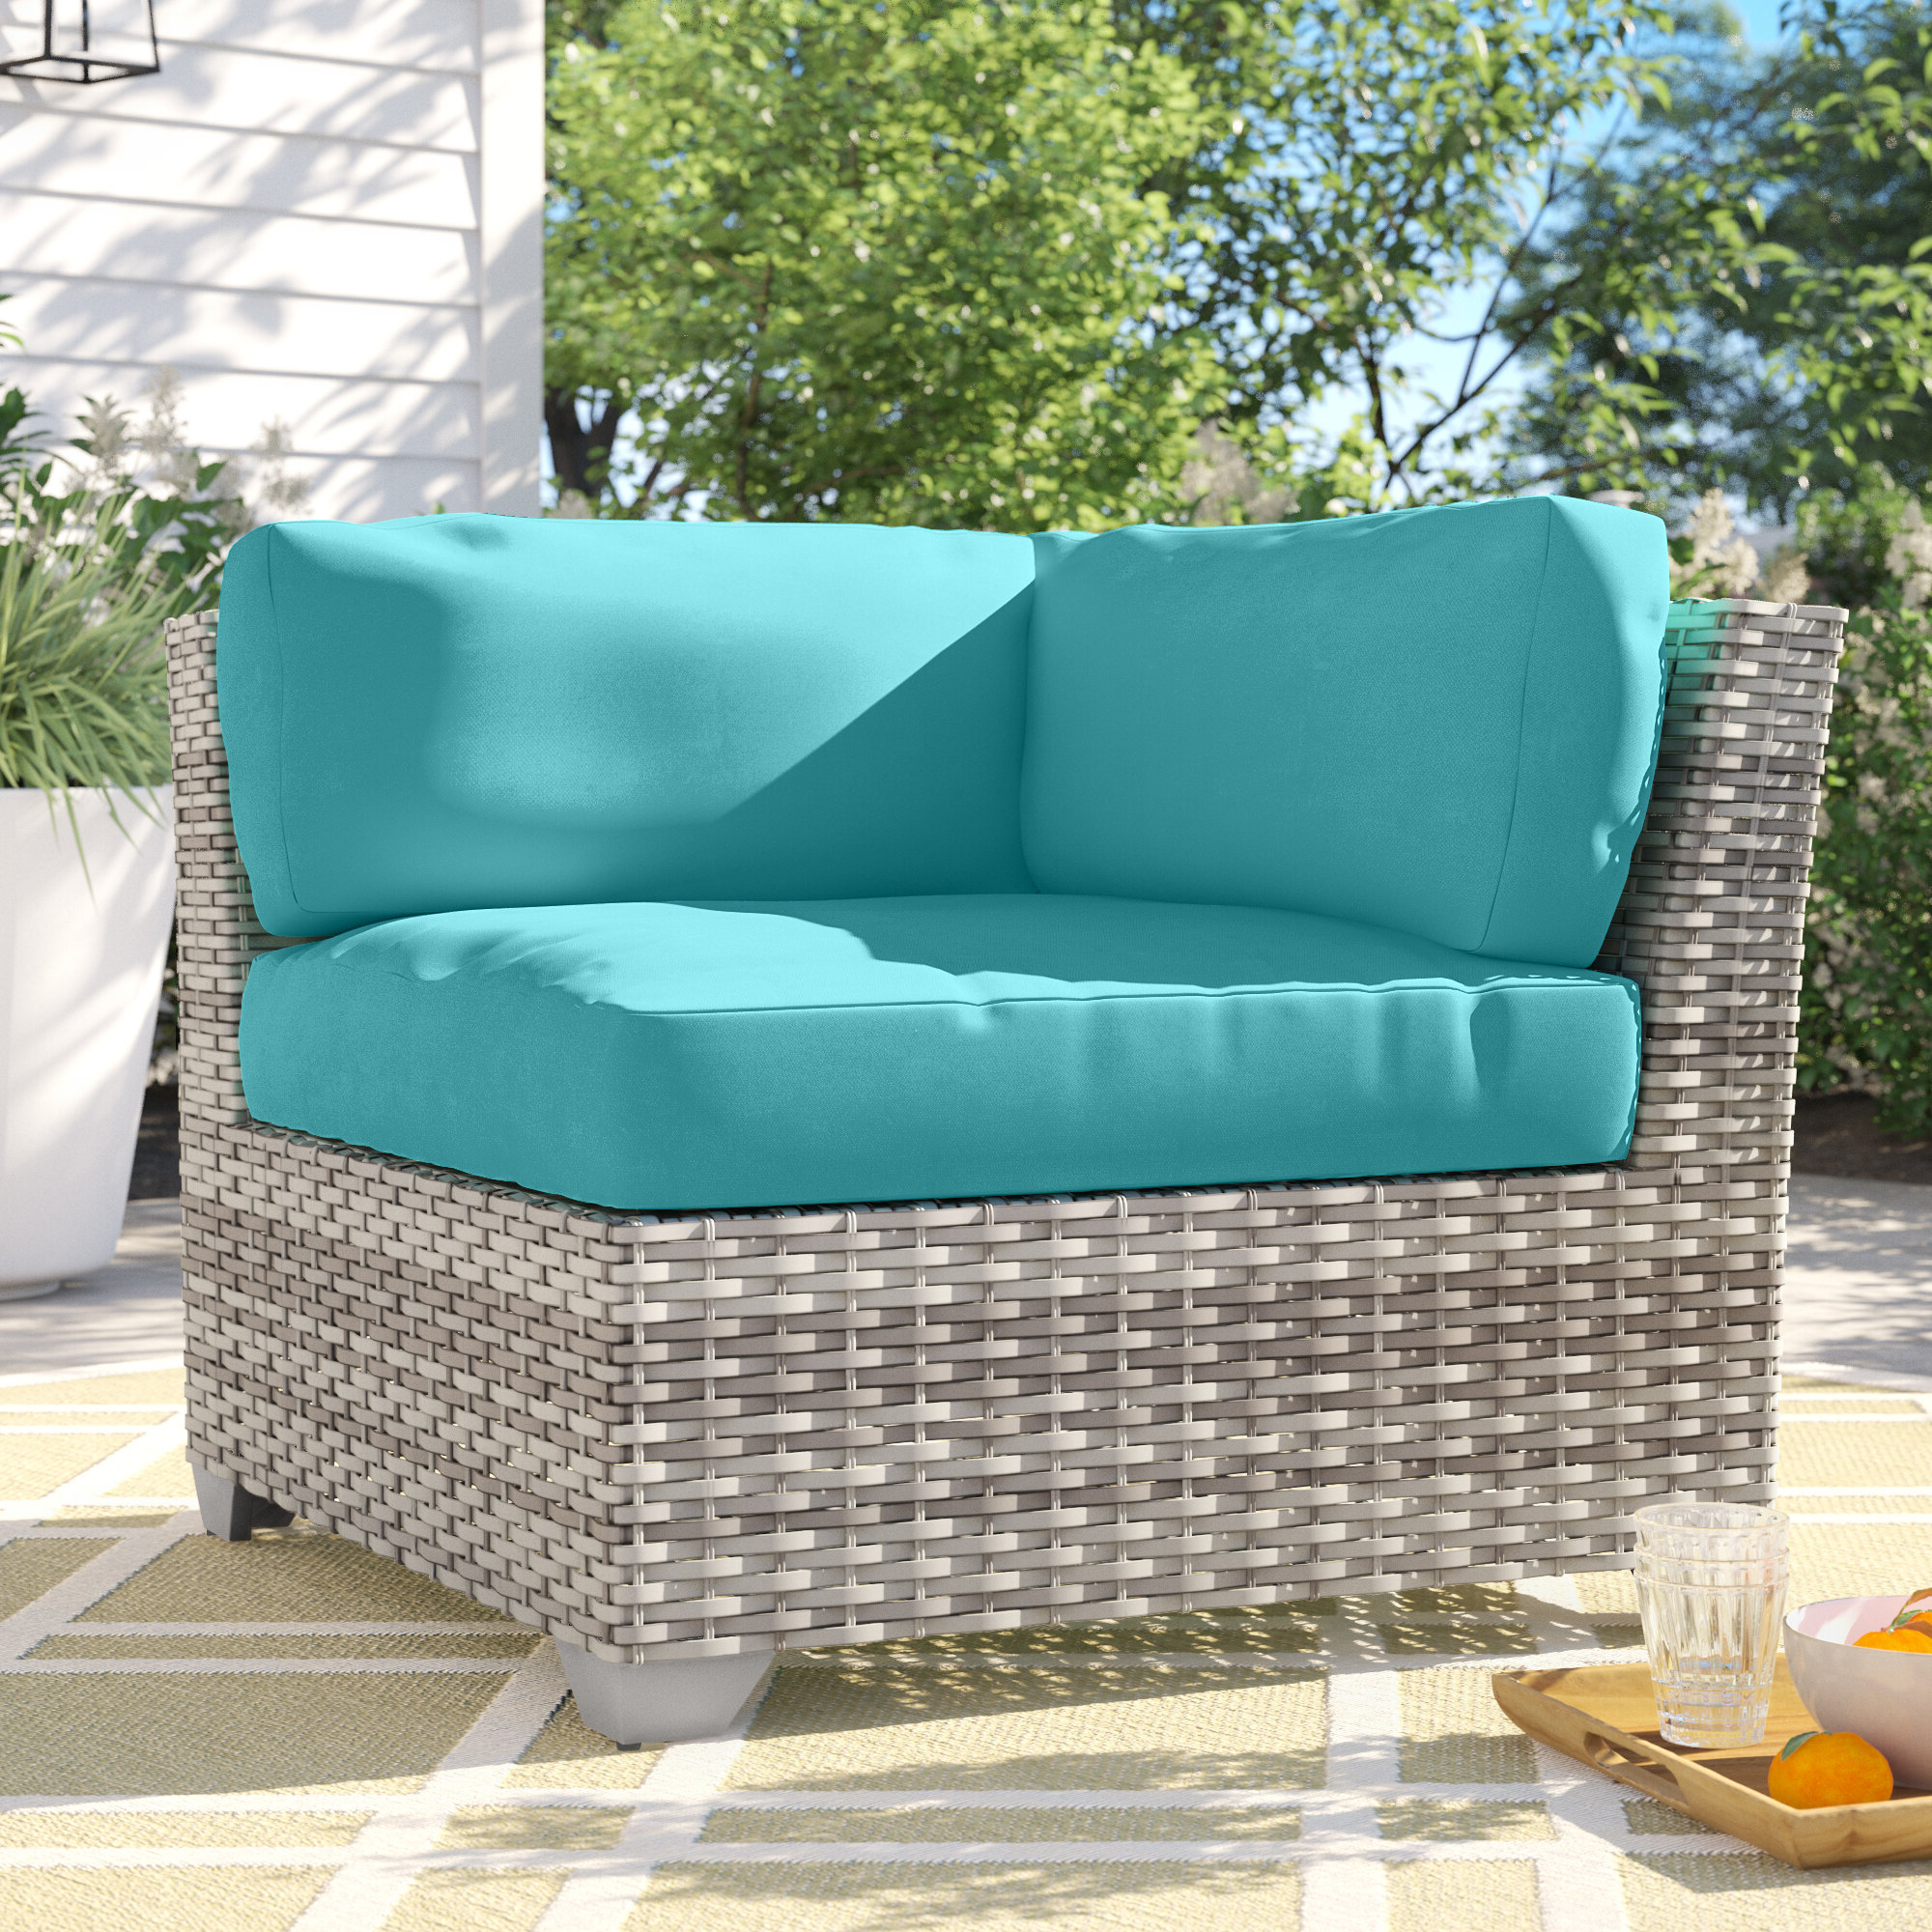 Most Popular Falmouth Patio Sofas With Cushions Pertaining To Falmouth Corner Patio Chair With Cushions (Gallery 18 of 20)